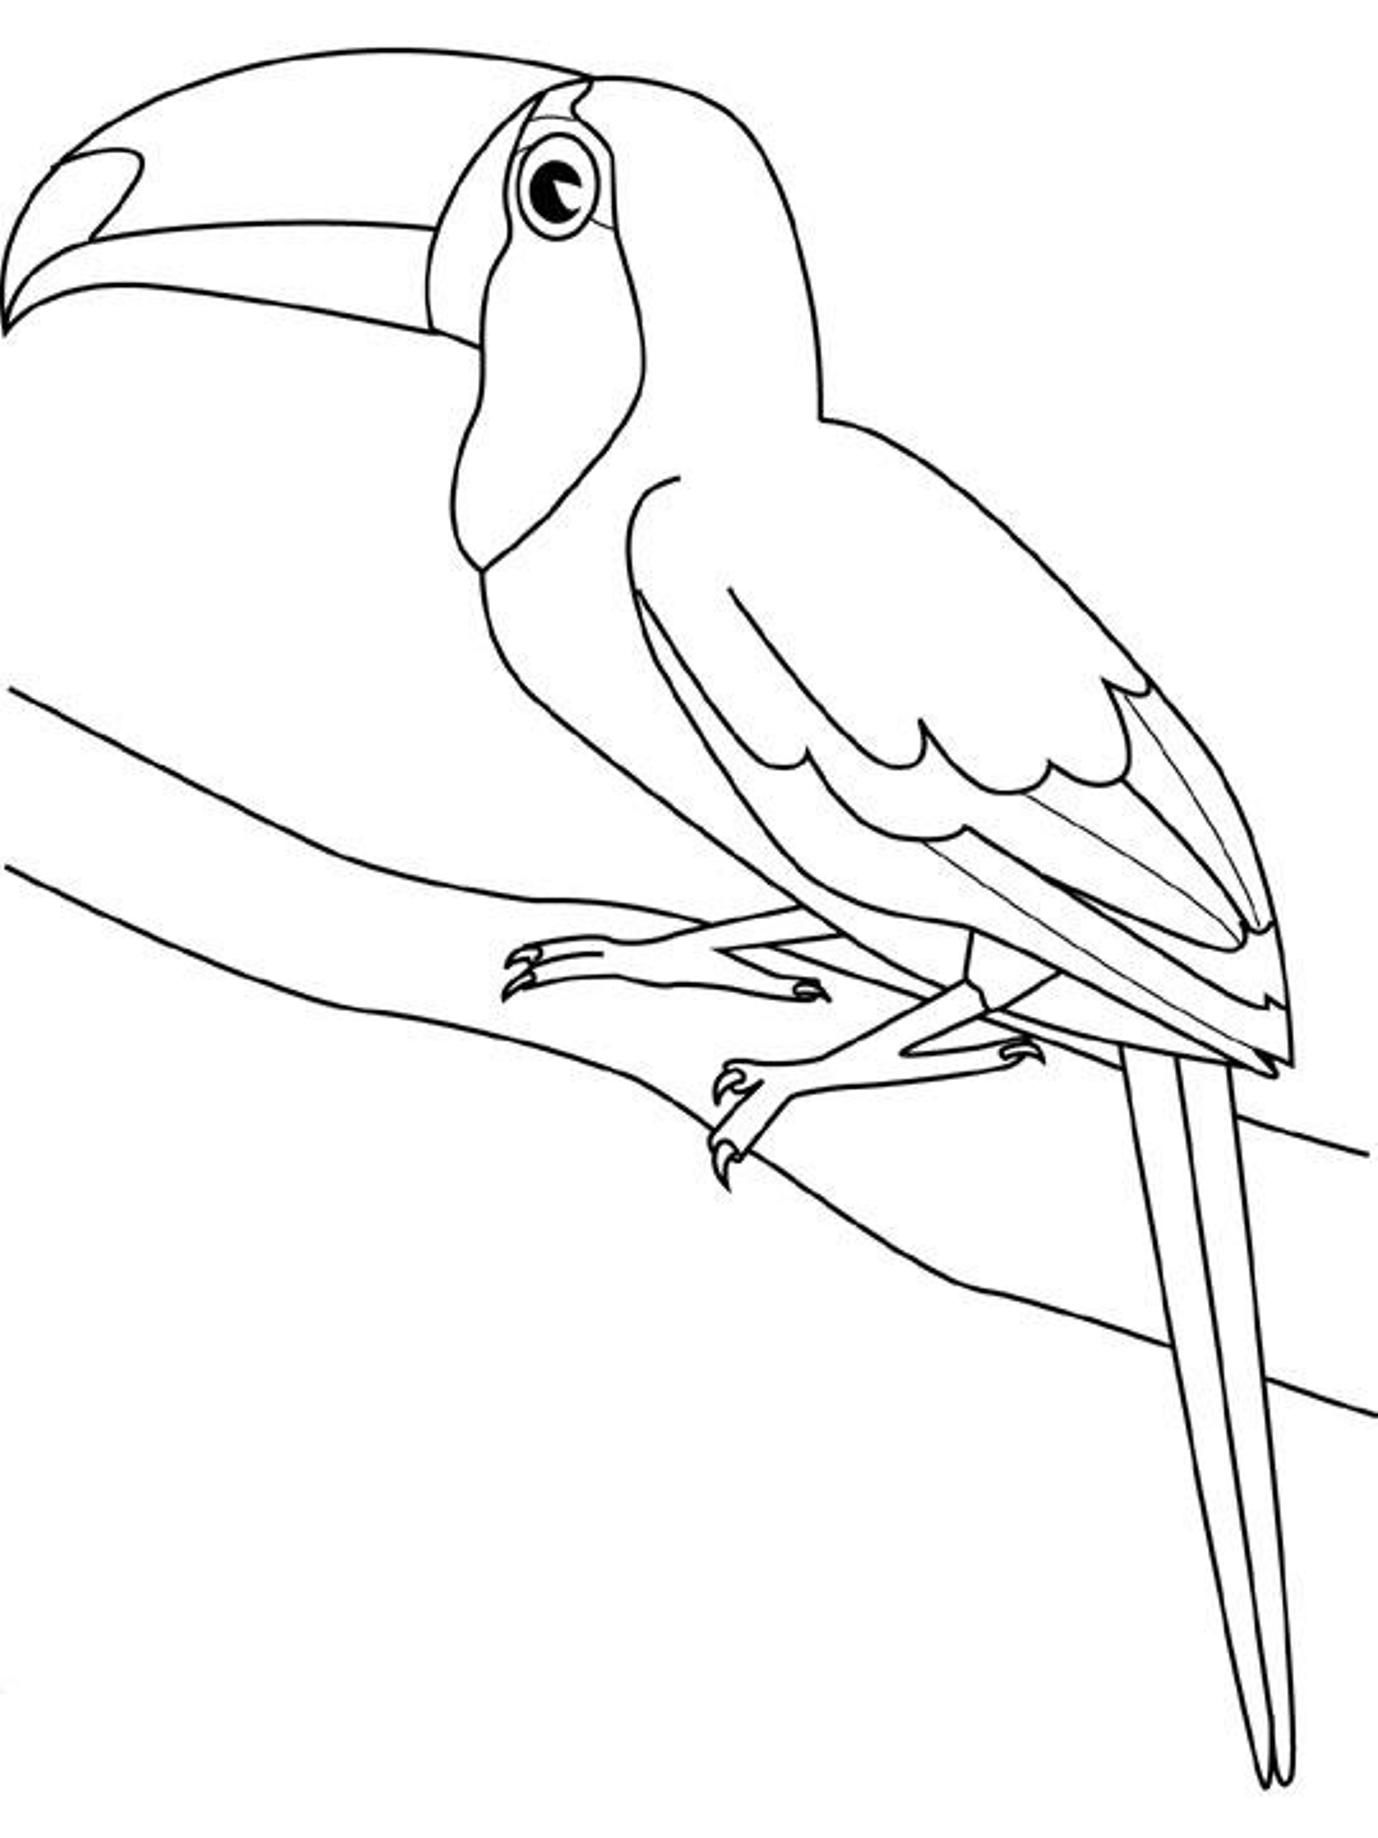 http://animalia-life.com/image.php?pic=/images/toucan-coloring-pages ...